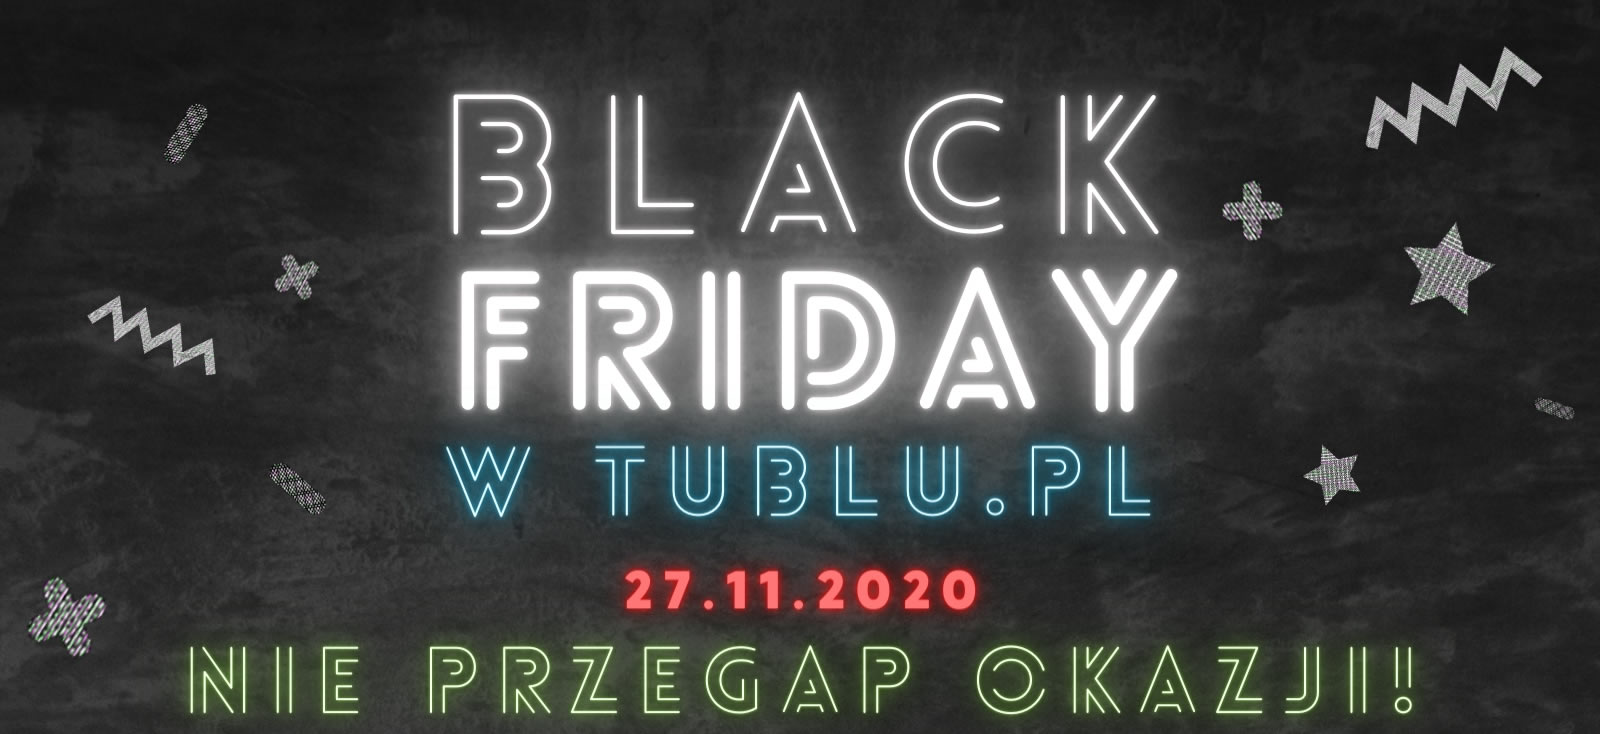 Black Friday w tublu